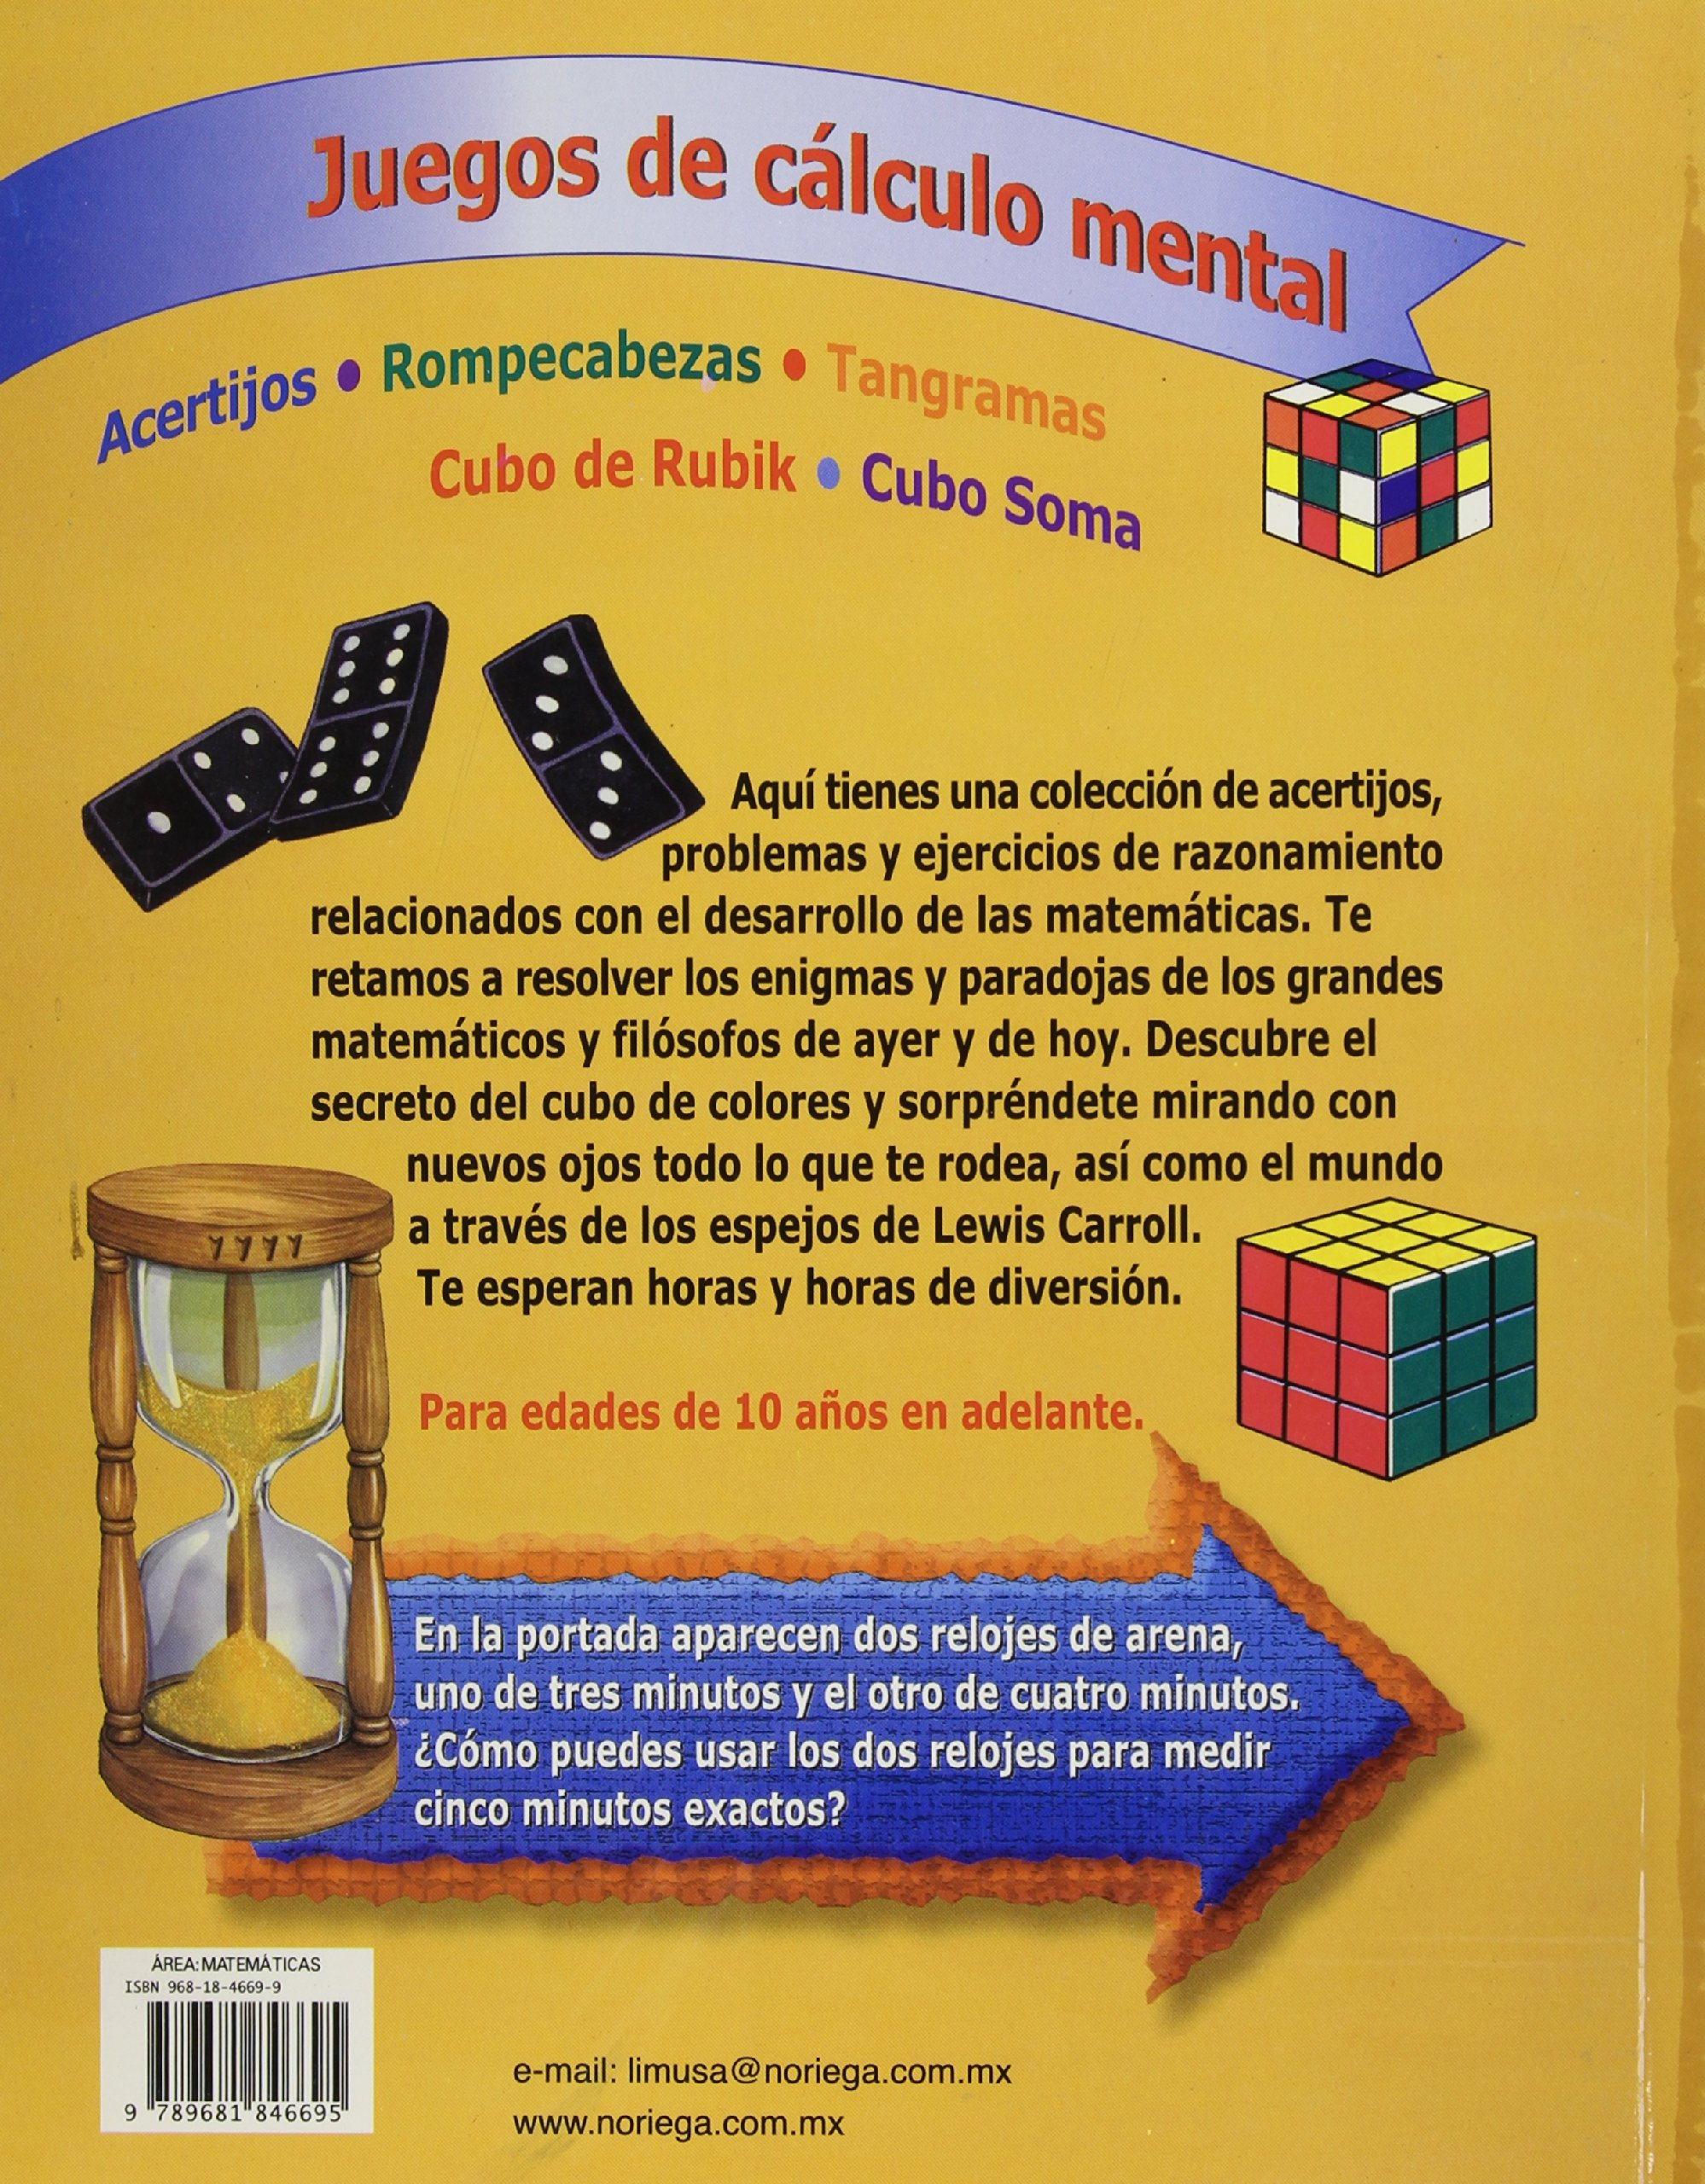 Desafios Matematicos / How Puzzling (Spanish Edition): Charles Snape, Heather Scott, Rodolfo Pina Garcia: 9789681846695: Amazon.com: Books